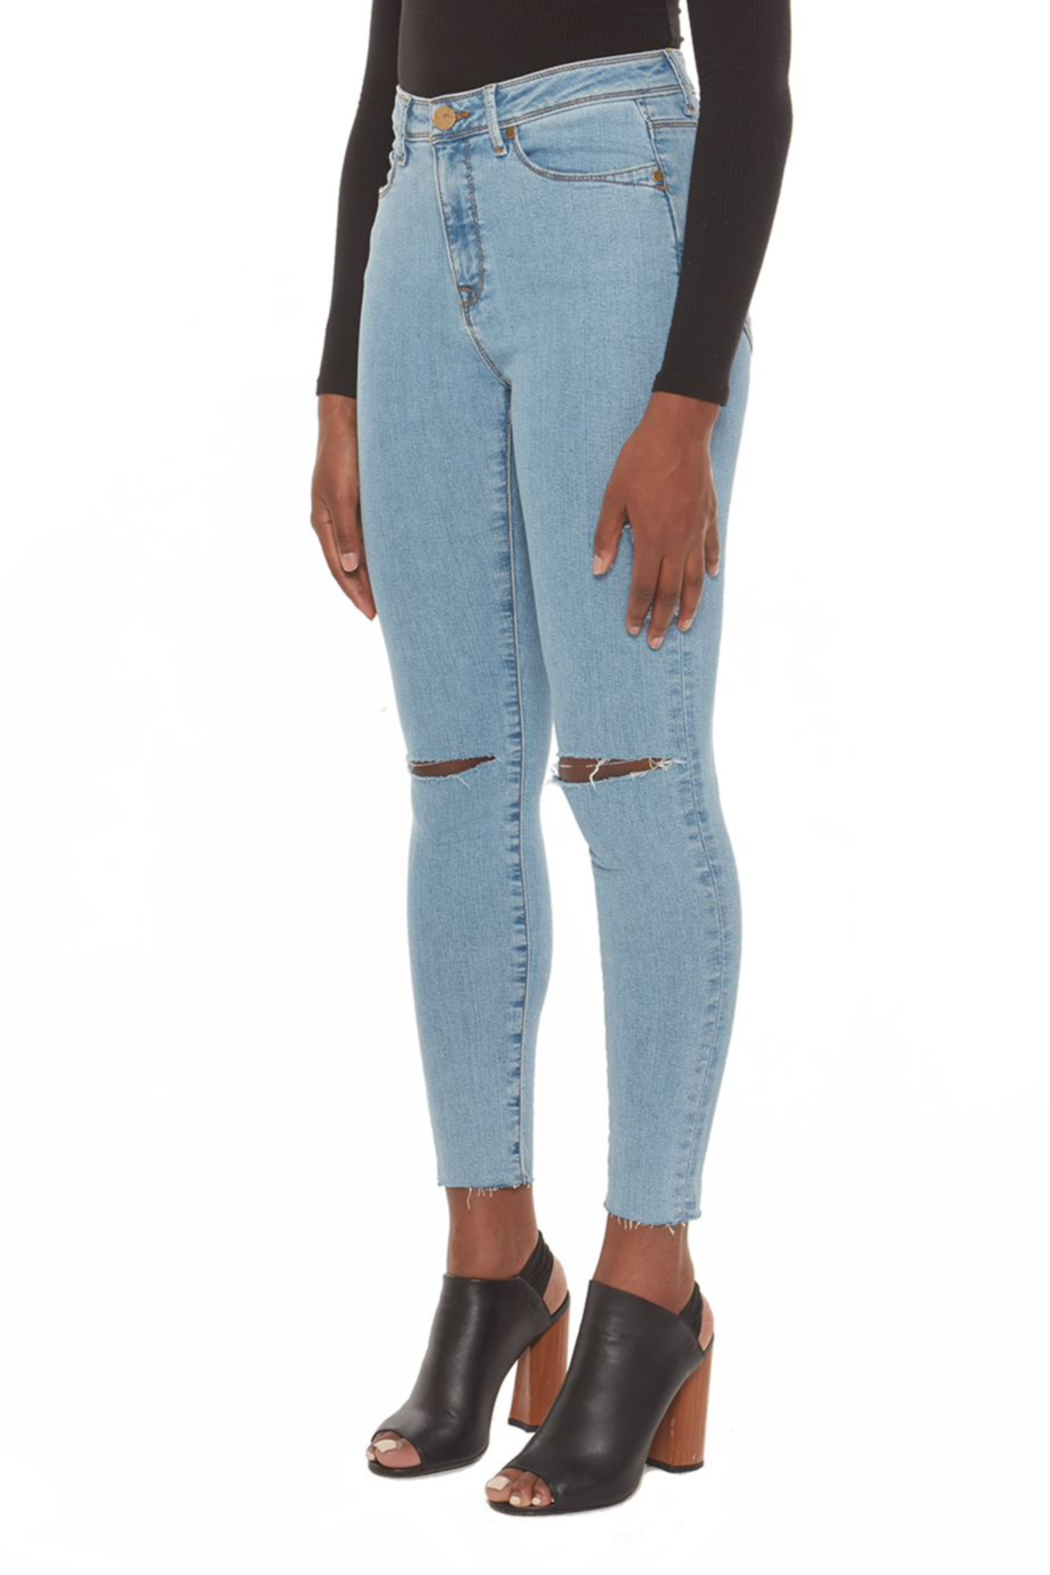 Lola Jeans Alexa Skinny High Rise Jeans - Front Full Image